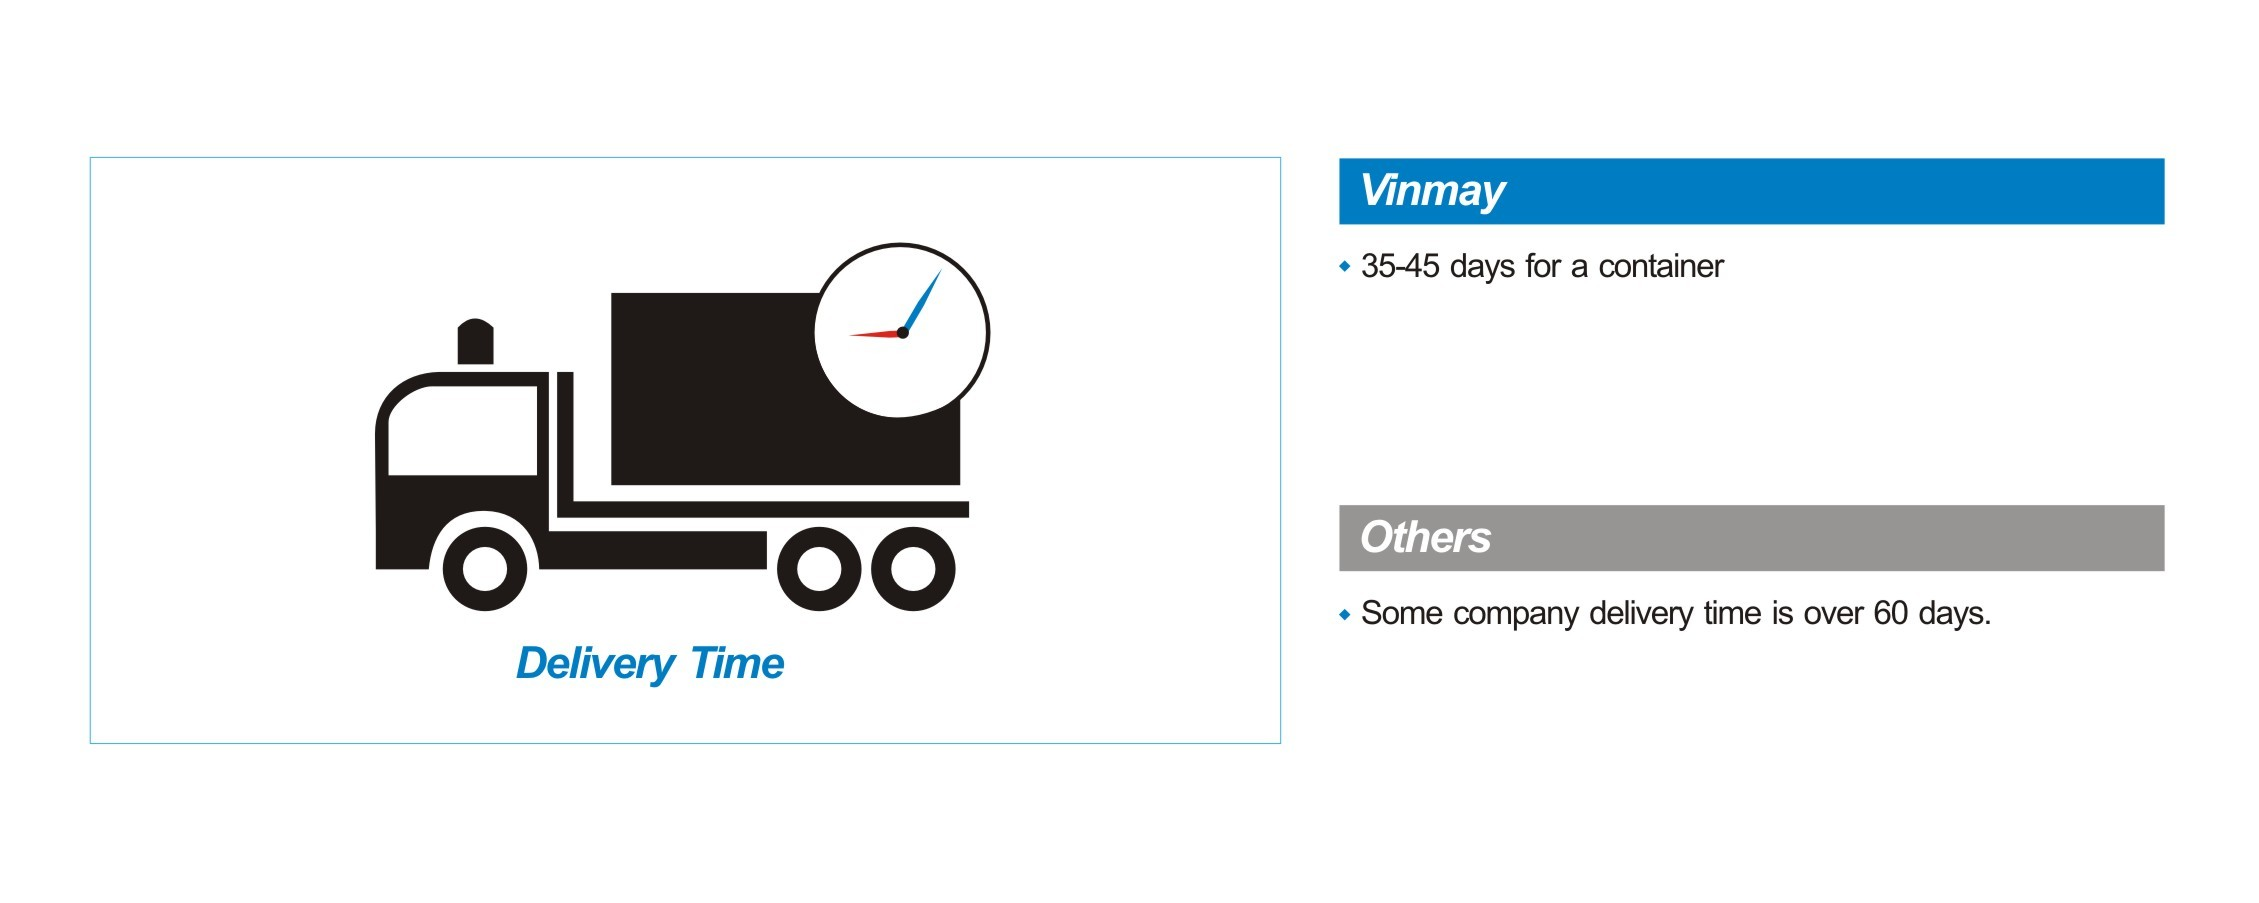 Vinmay could produce a container quantitiy tubes in 35 to 45 days